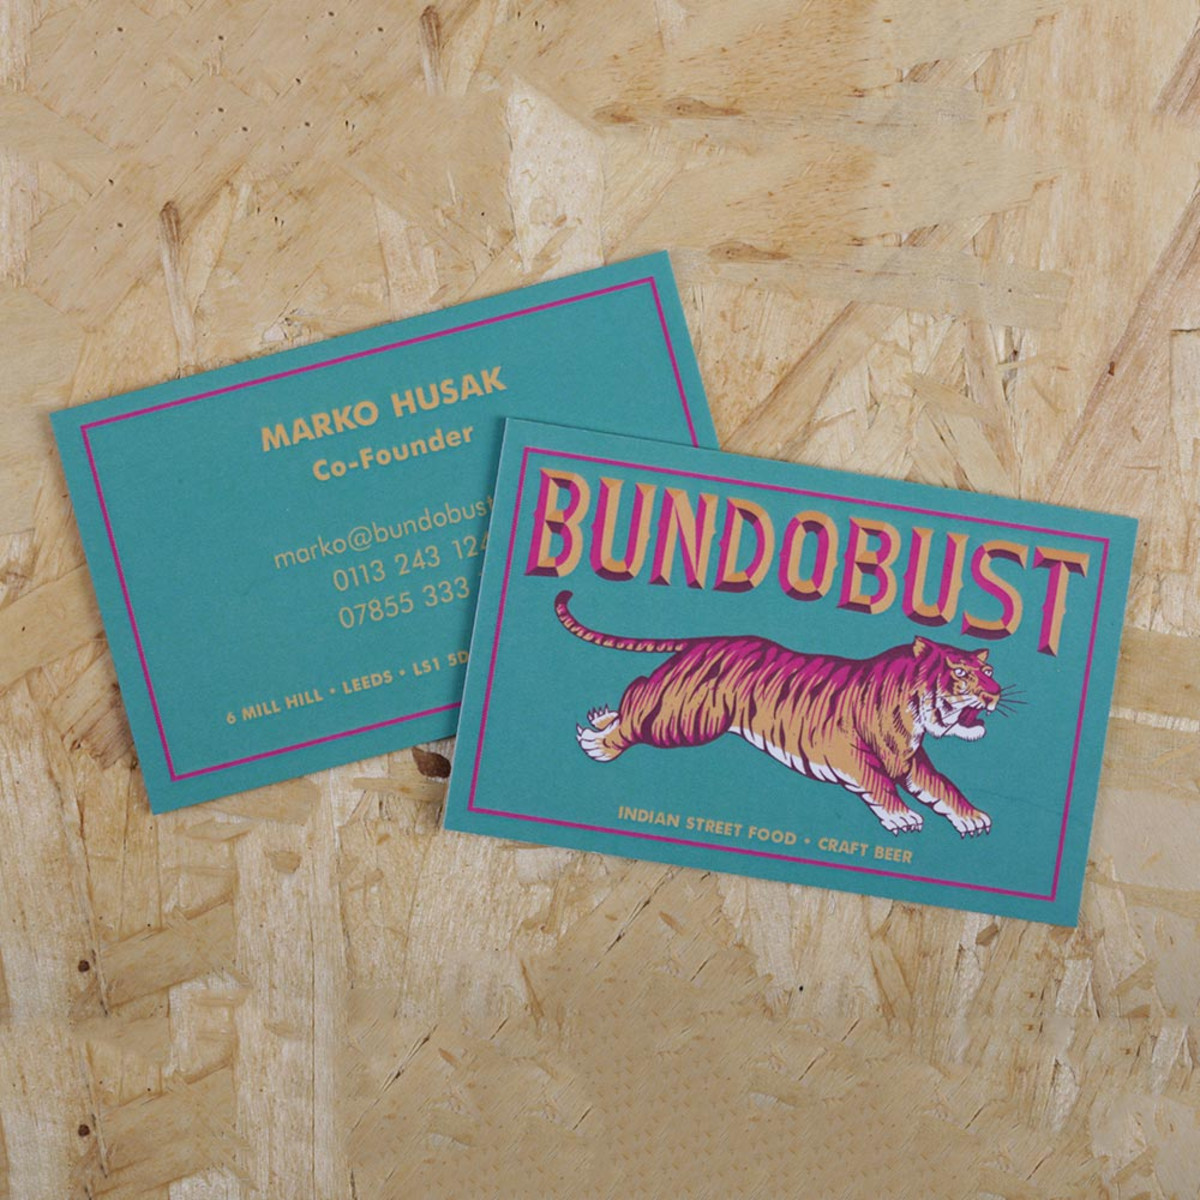 100 x Layered Business Cards for £35